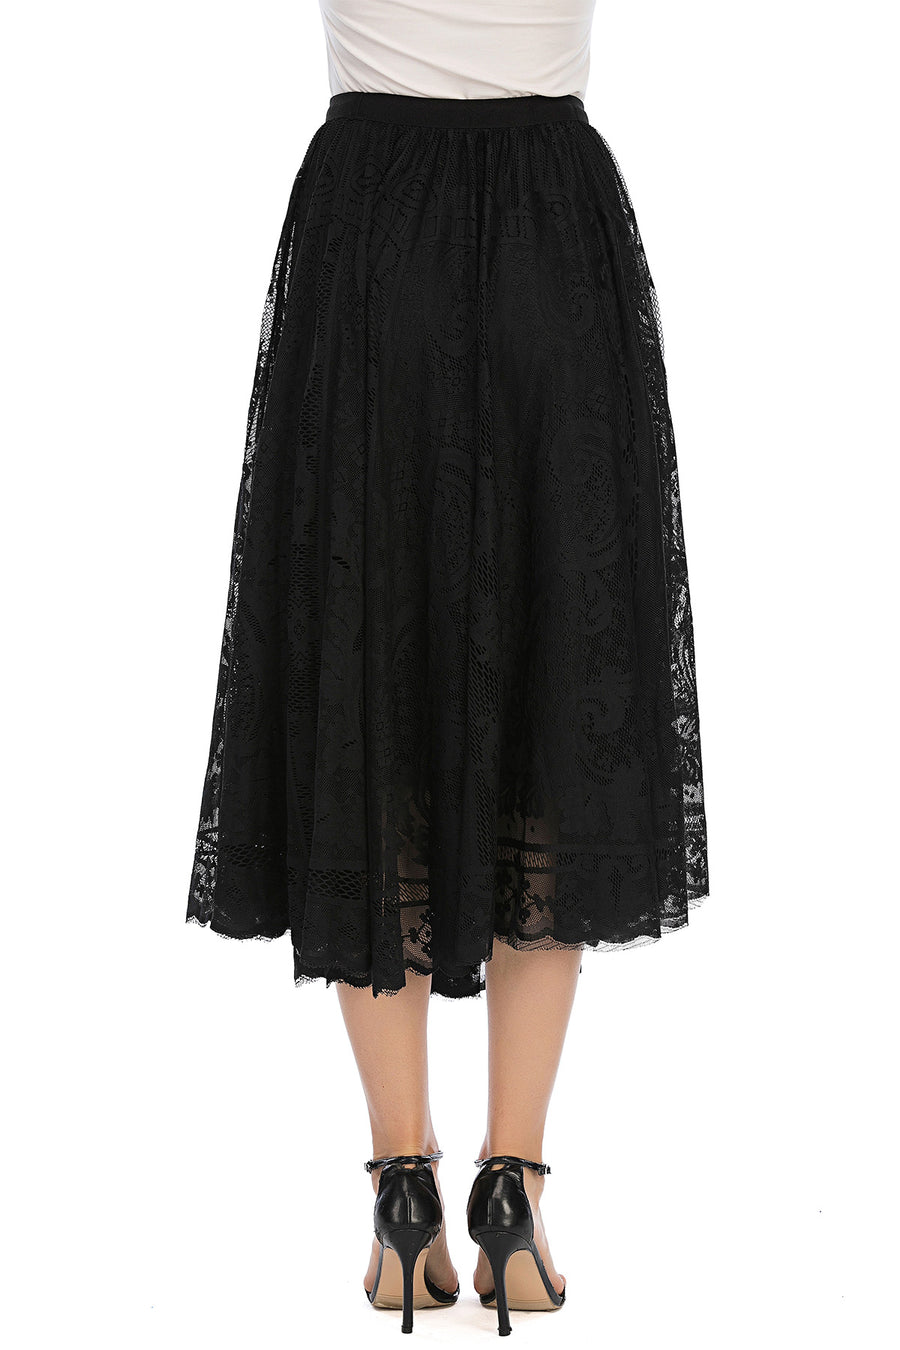 Mantra Pakistan Lace skirt | Western Wear